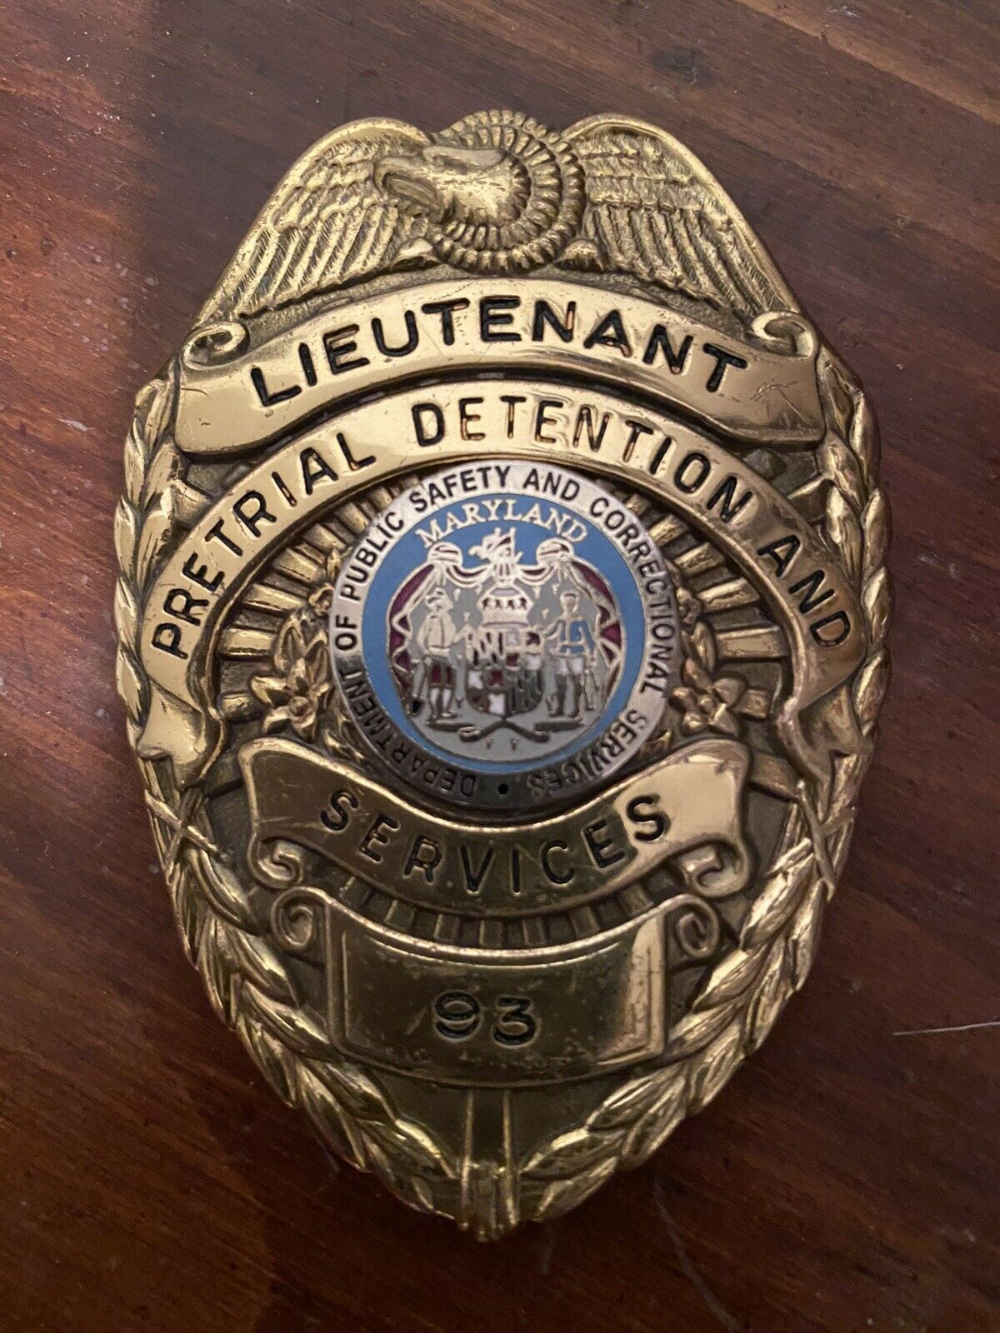 Lieutenant Pretrial Detention And Services Department Of Public Safety And Correctional Services Police Badge Texas Police Leather Fob